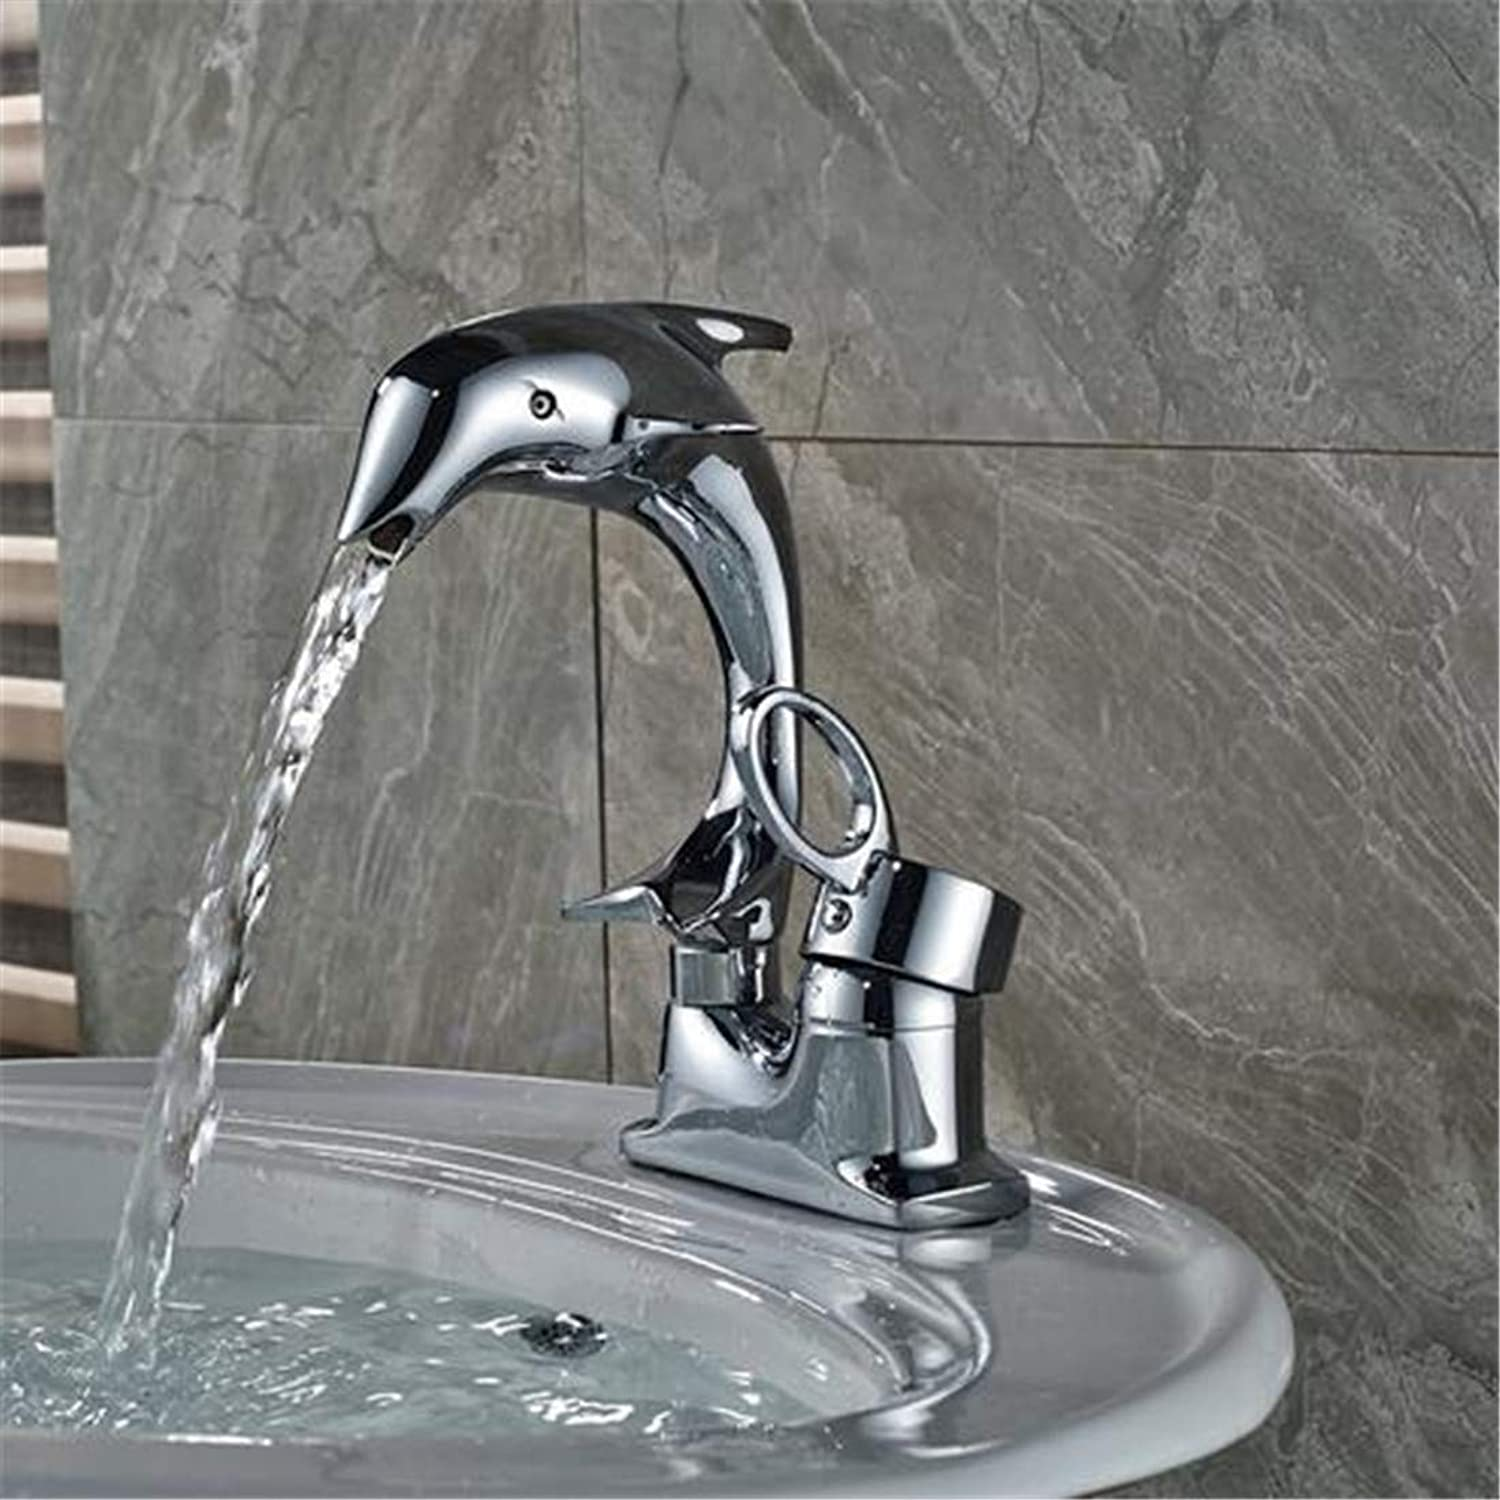 Luxury Modern Hot and Cold Faucet Vintage Platingpolished Chrome Bathroom Sink Faucet Single Handle Dolphin Basin Mixer Taps